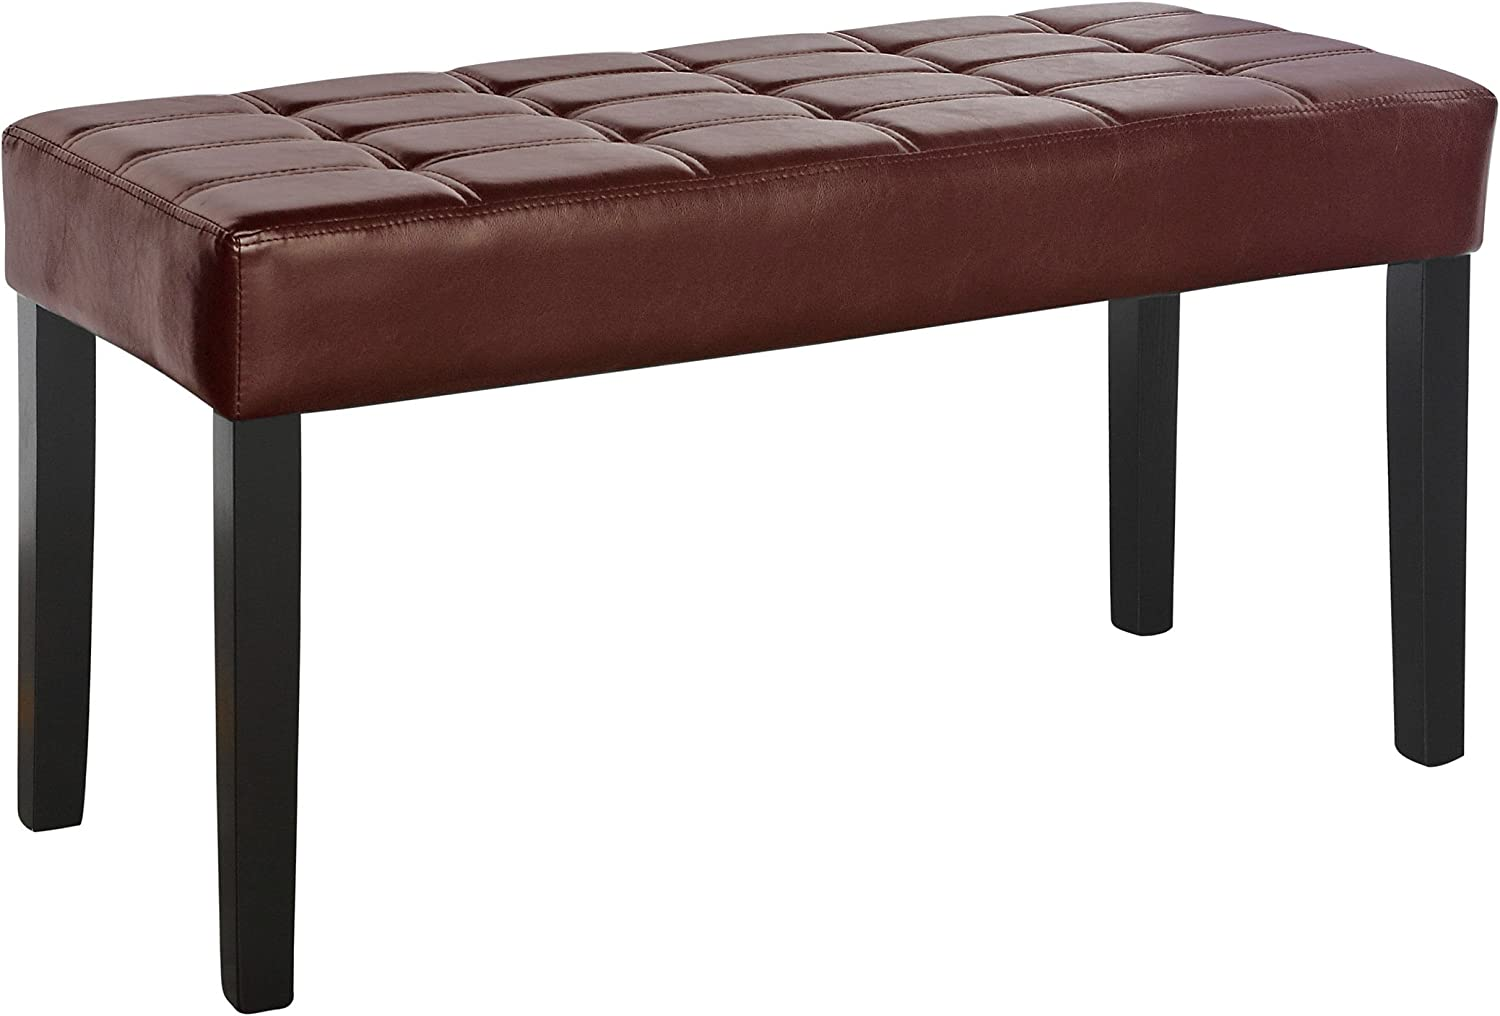 CorLiving LMY-180-O California 24 Panel Bench in Brown Leatherette